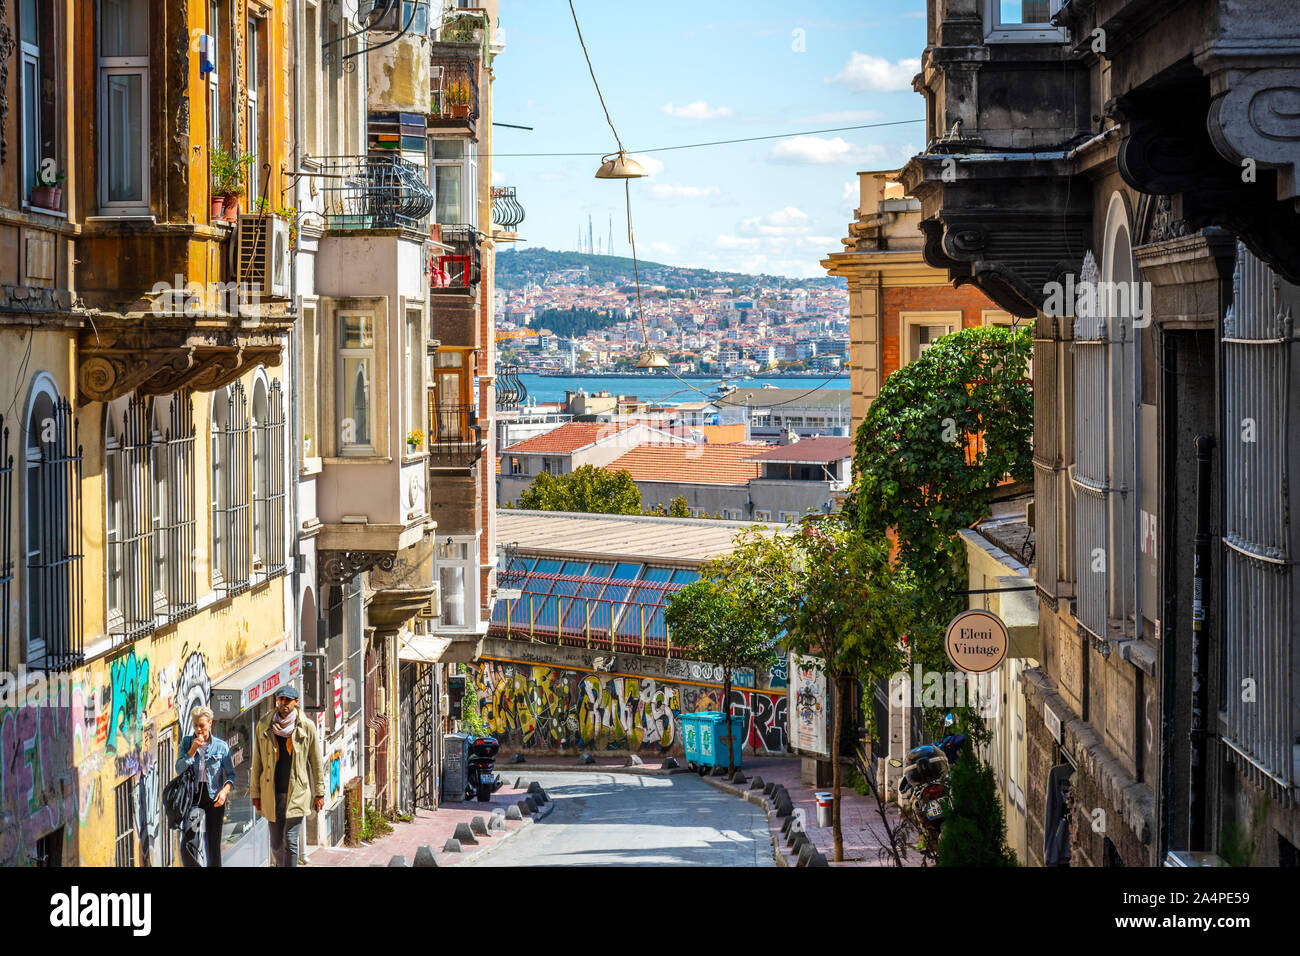 A couple walks the hilly Galata Karakoy district with the Bosphorus River and Golden Horn in the distance in Istanbul, Turkey. Stock Photo